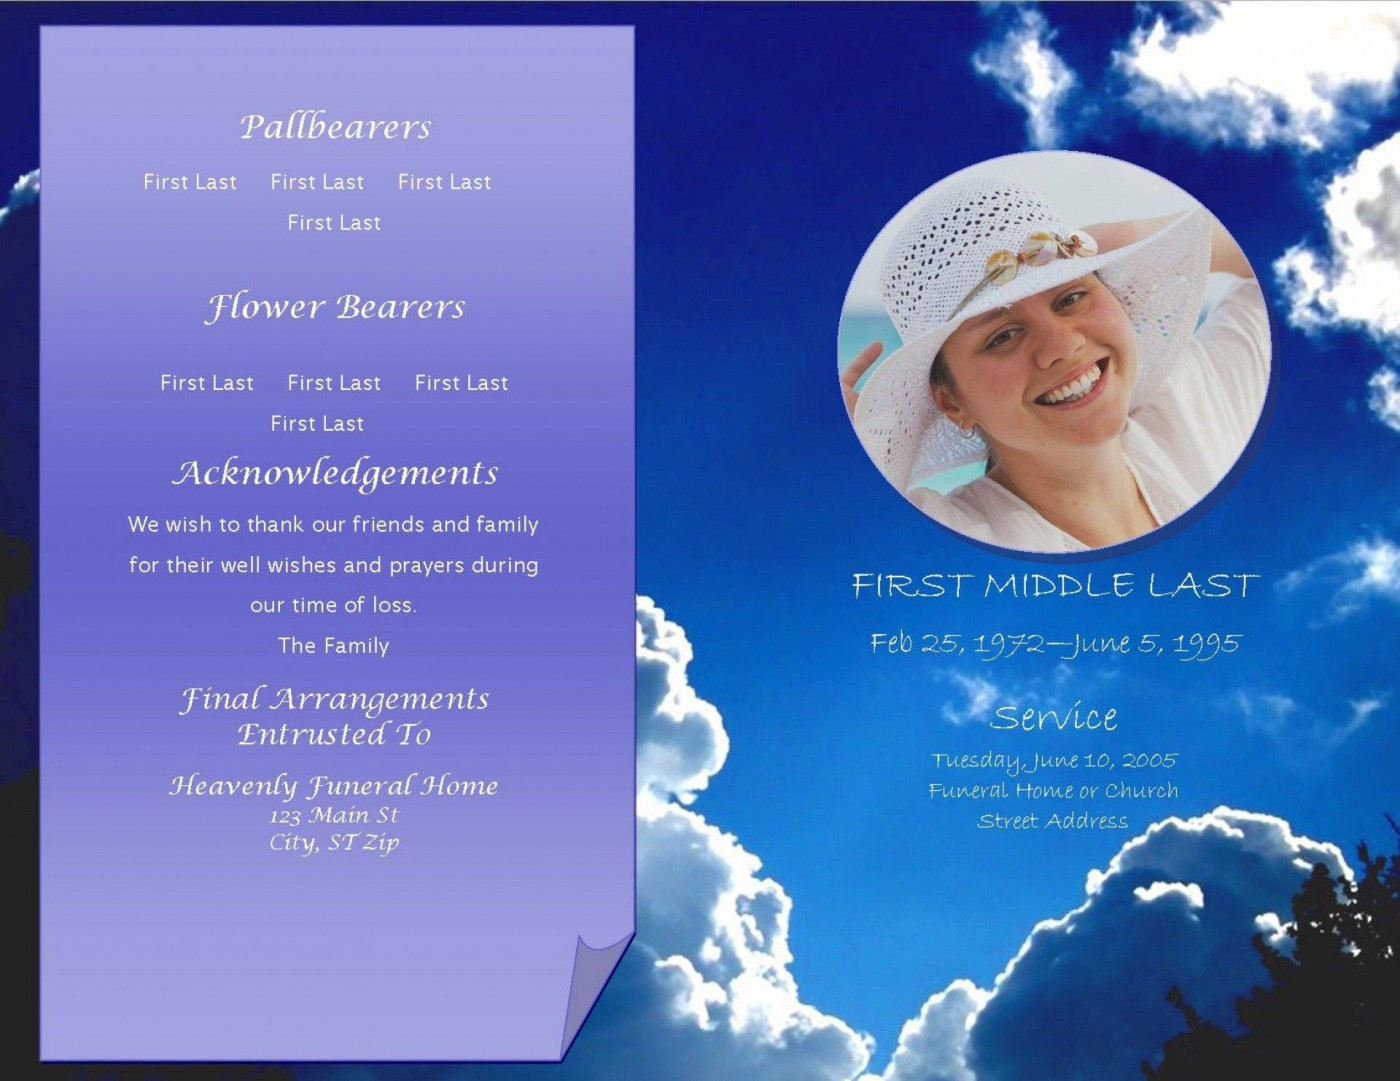 004 Excellent Celebration Of Life Invitation Template Free Concept 1400